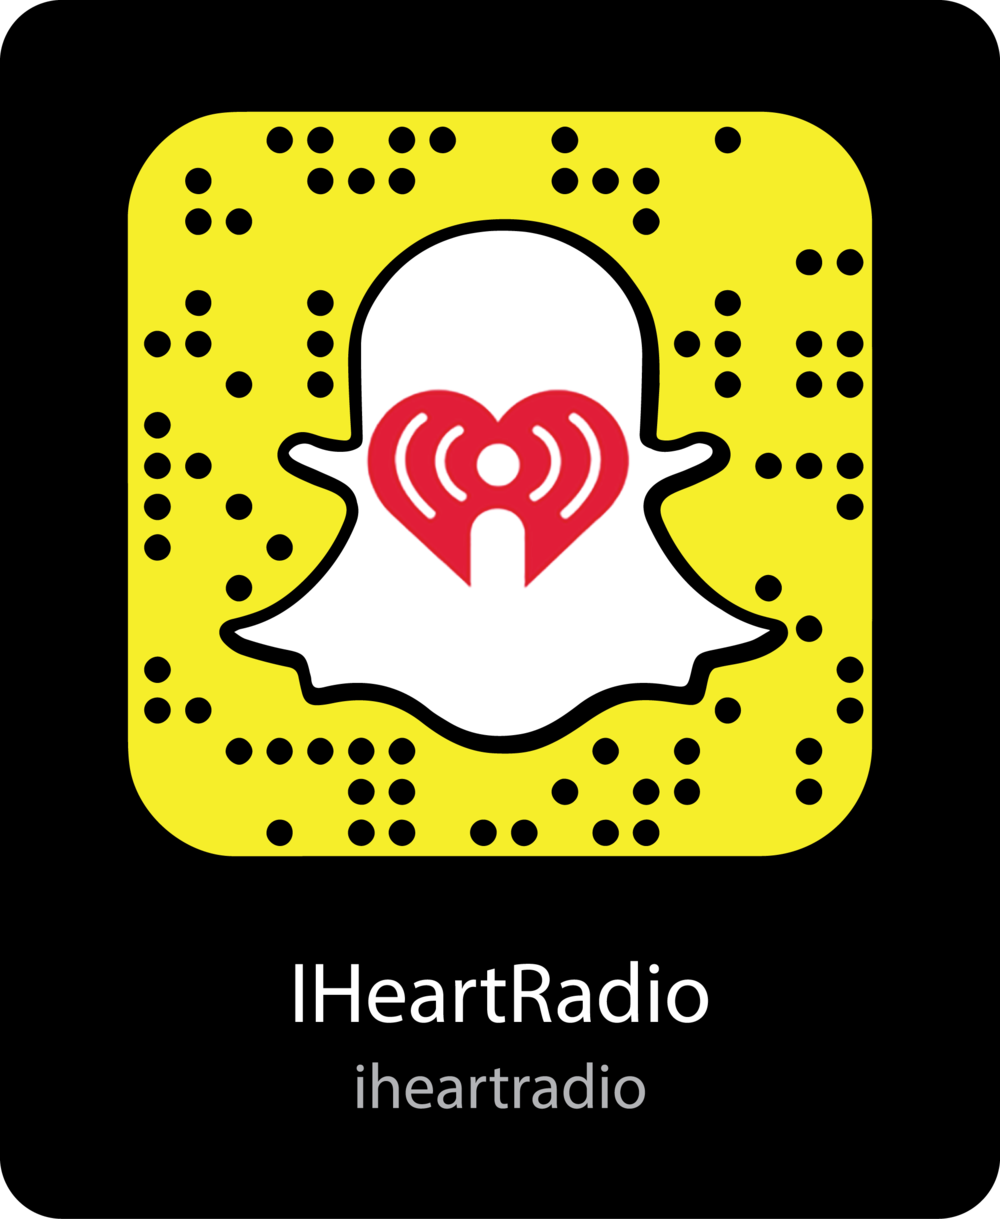 iheartradio-Brands-snapchat-snapcode.png